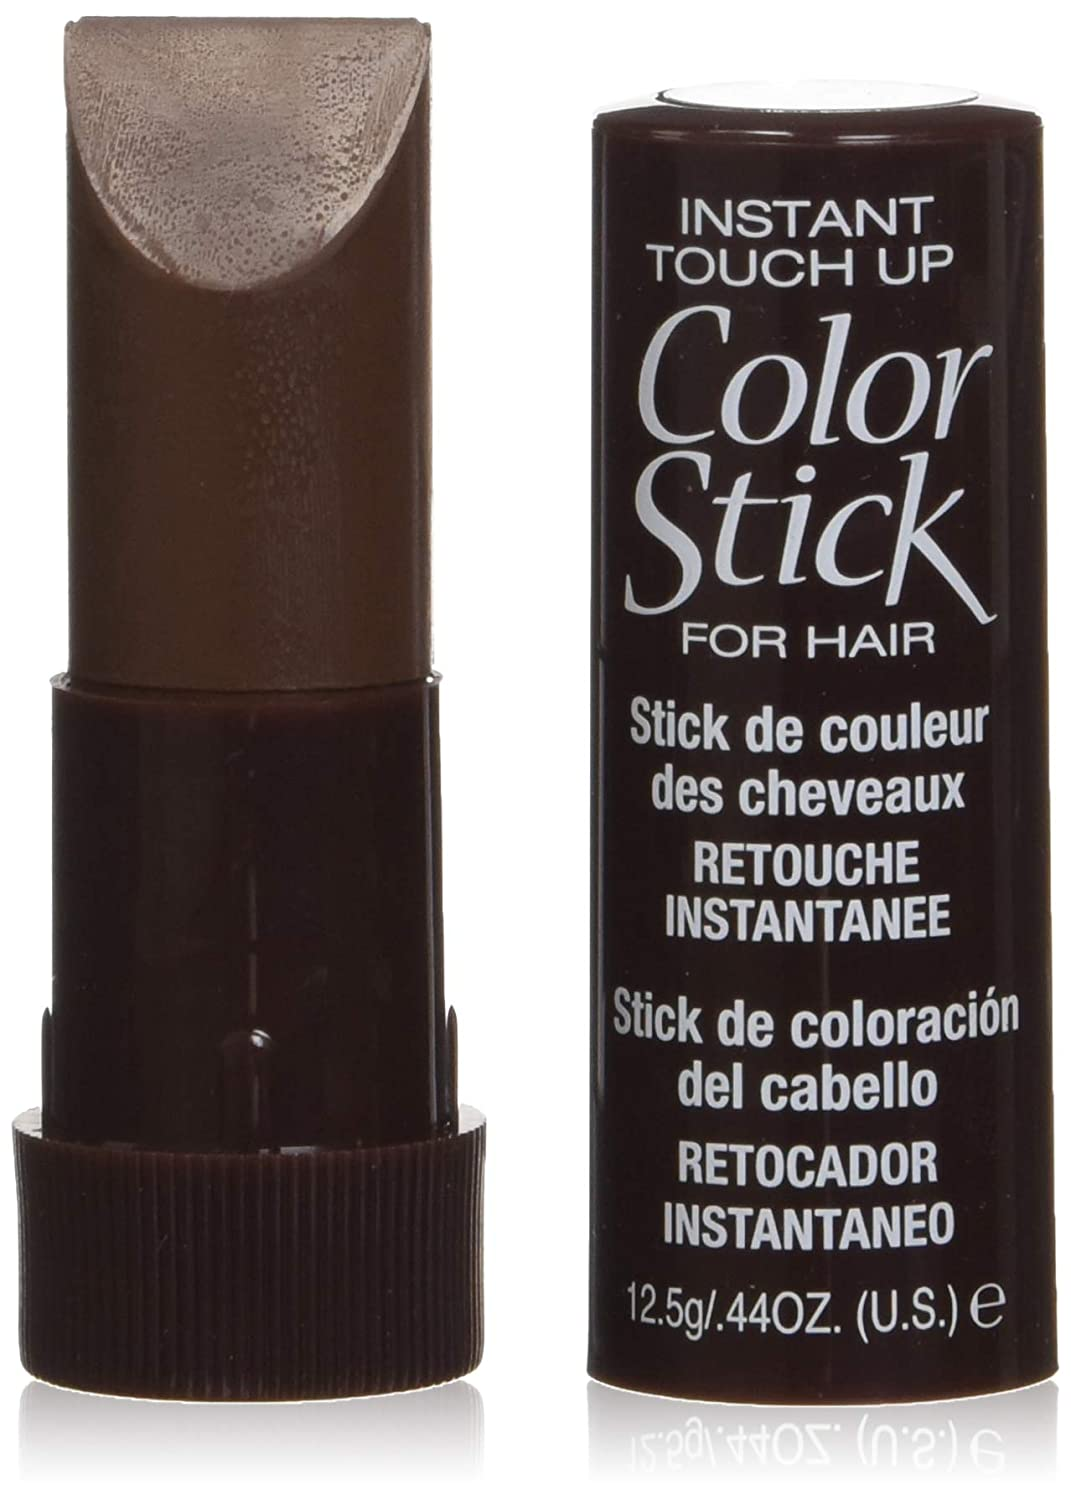 Daggett & Ramsdell color stick medium brown, 1 Count 021959201423